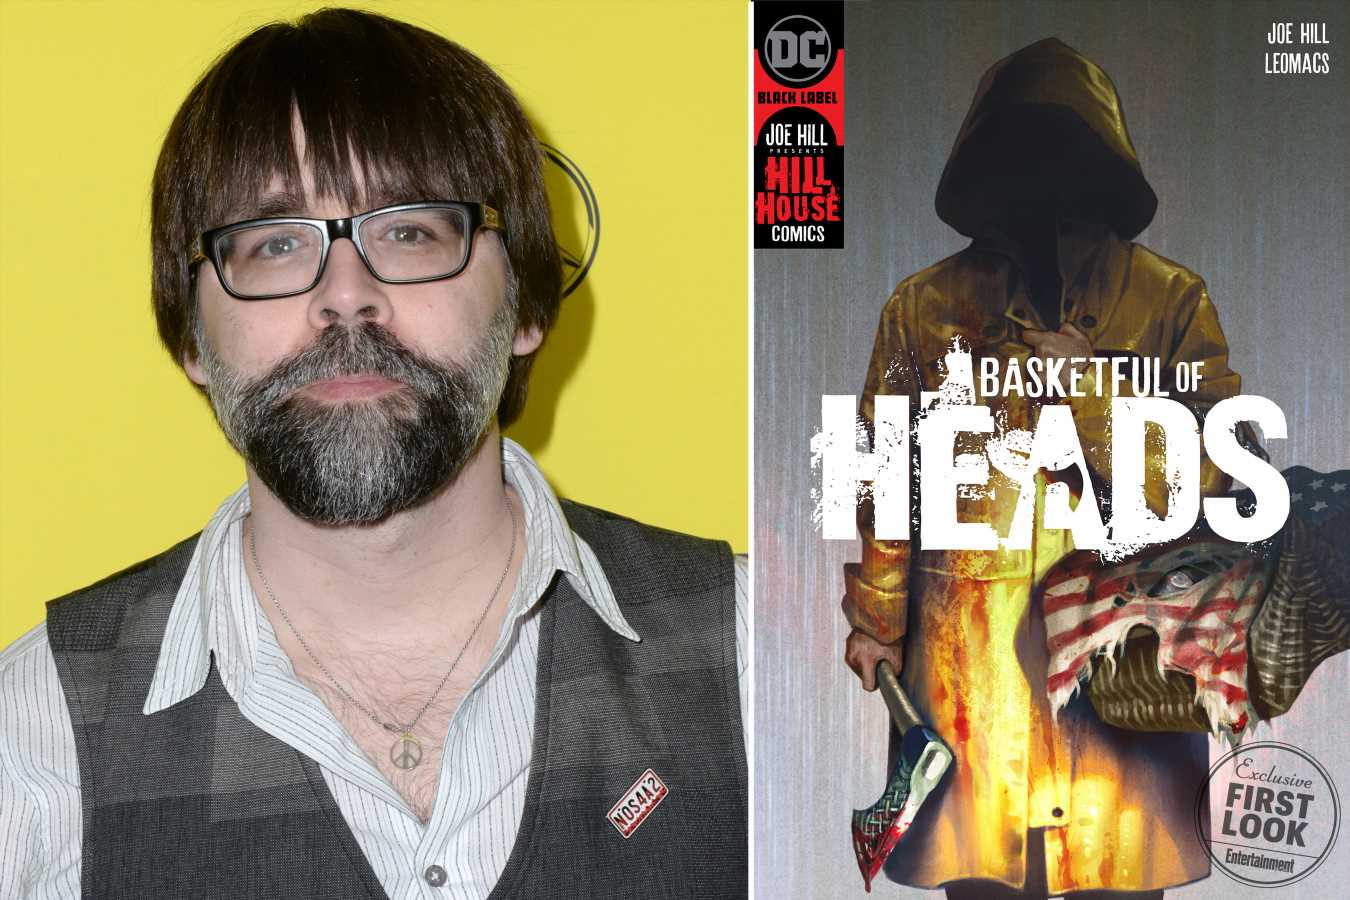 Joe Hill to launch horror line Hill House Comics at DC